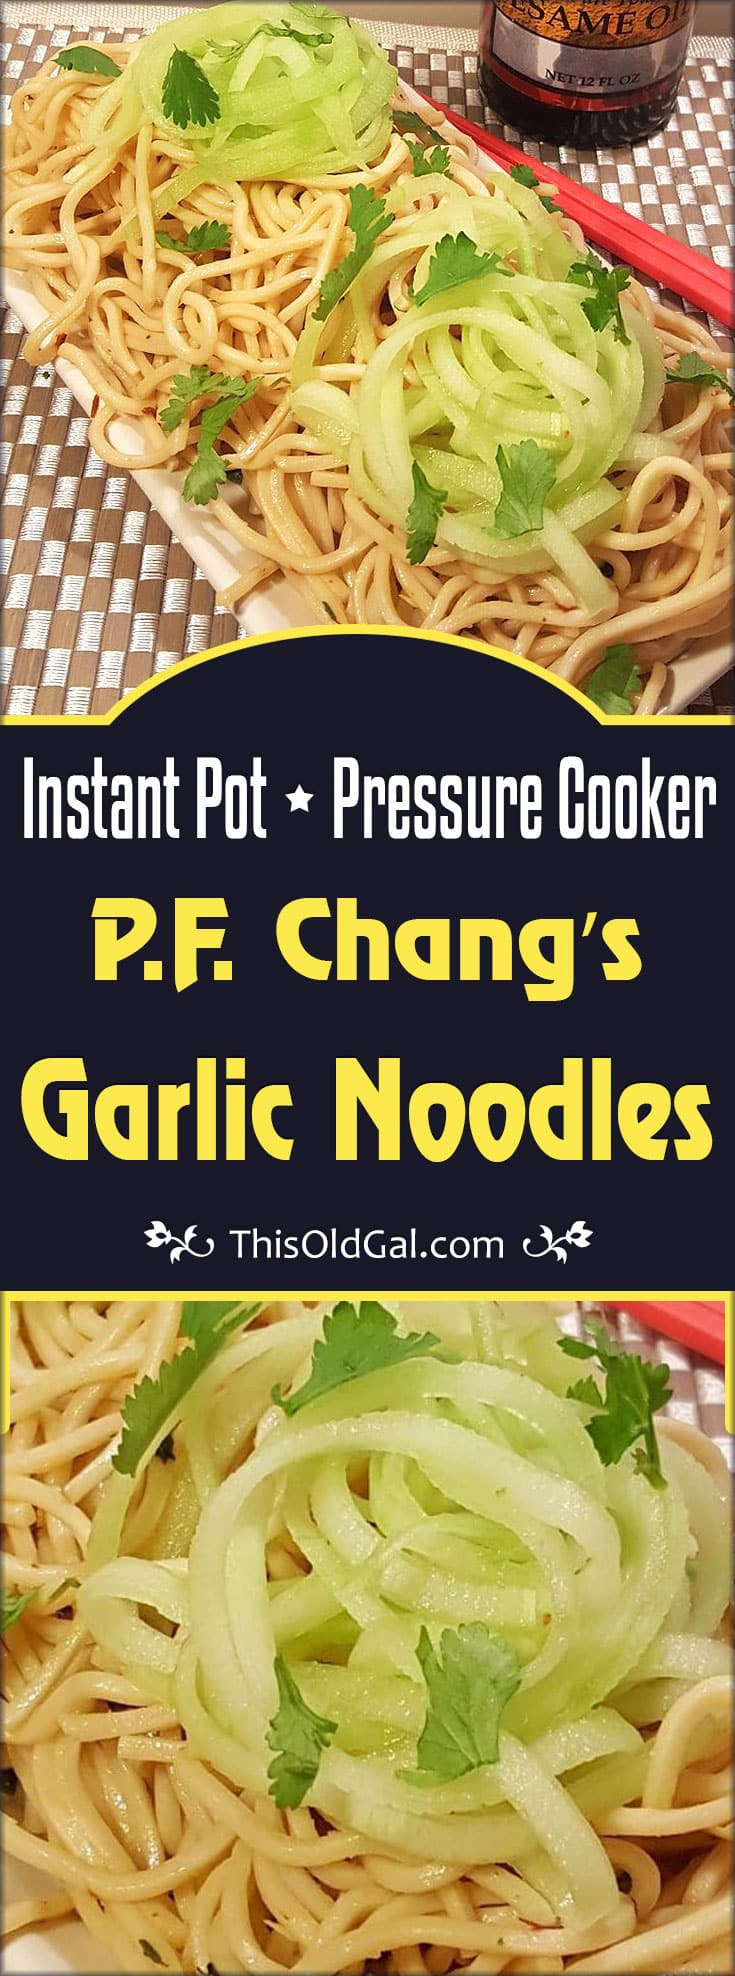 Pressure Cooker P.F. Chang's Garlic Noodles (Instant Pot)